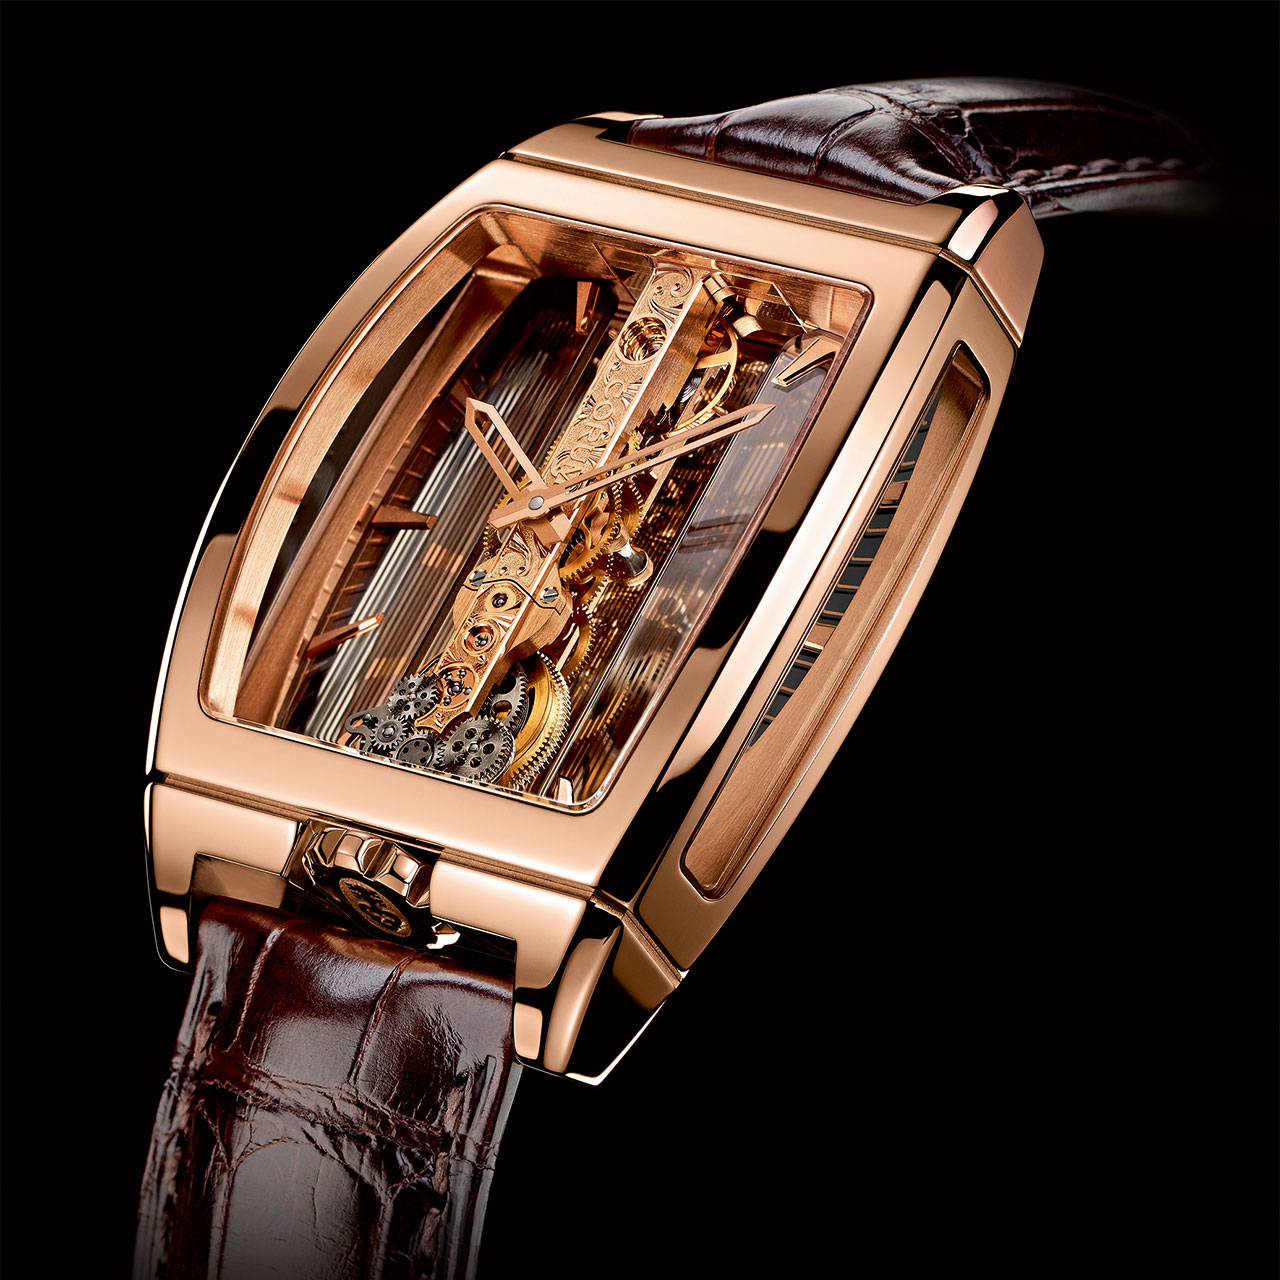 Corum Golden Bridge Hand-wound Watch